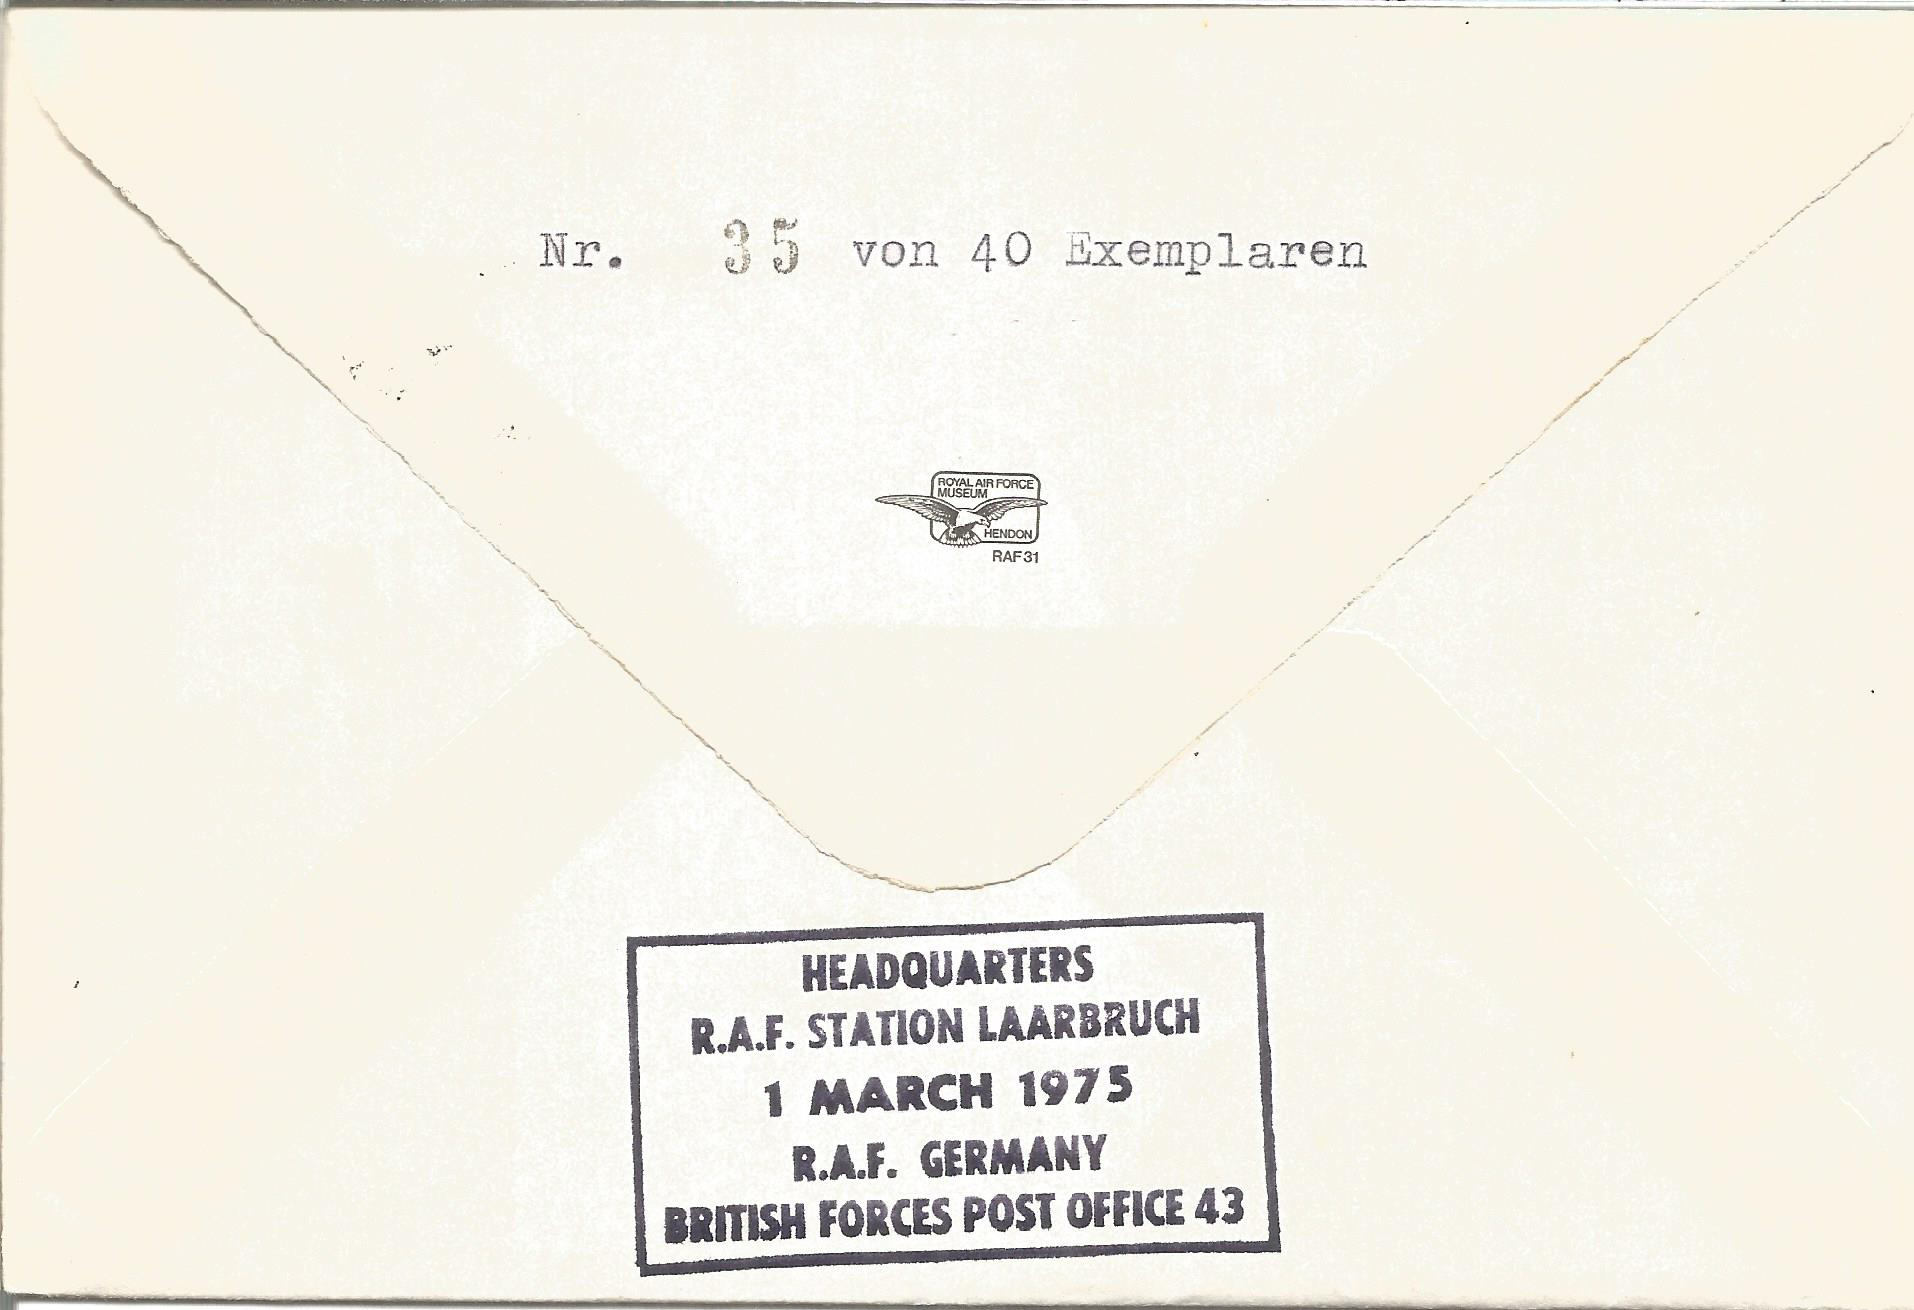 WW2 Prinz Eugen Captain Brinkmann signed No XV Squadron RAF 60th Anniversary of the Formation of the - Image 2 of 2